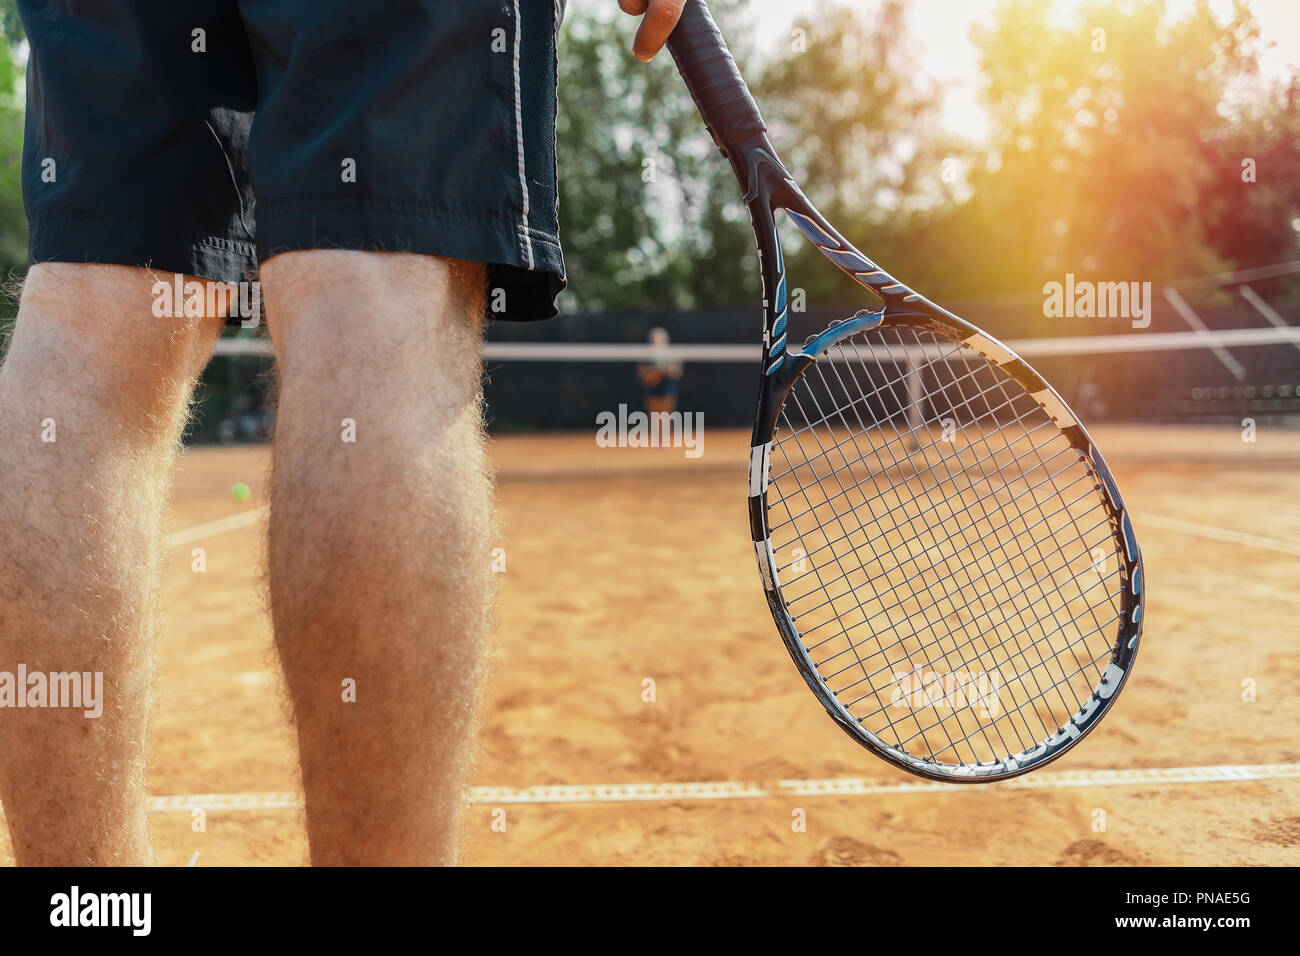 Close up of man holding racket while waiting for ball serving at tennis court. Man is on focus and foreground, tennis net is on background and blurred - Stock Image